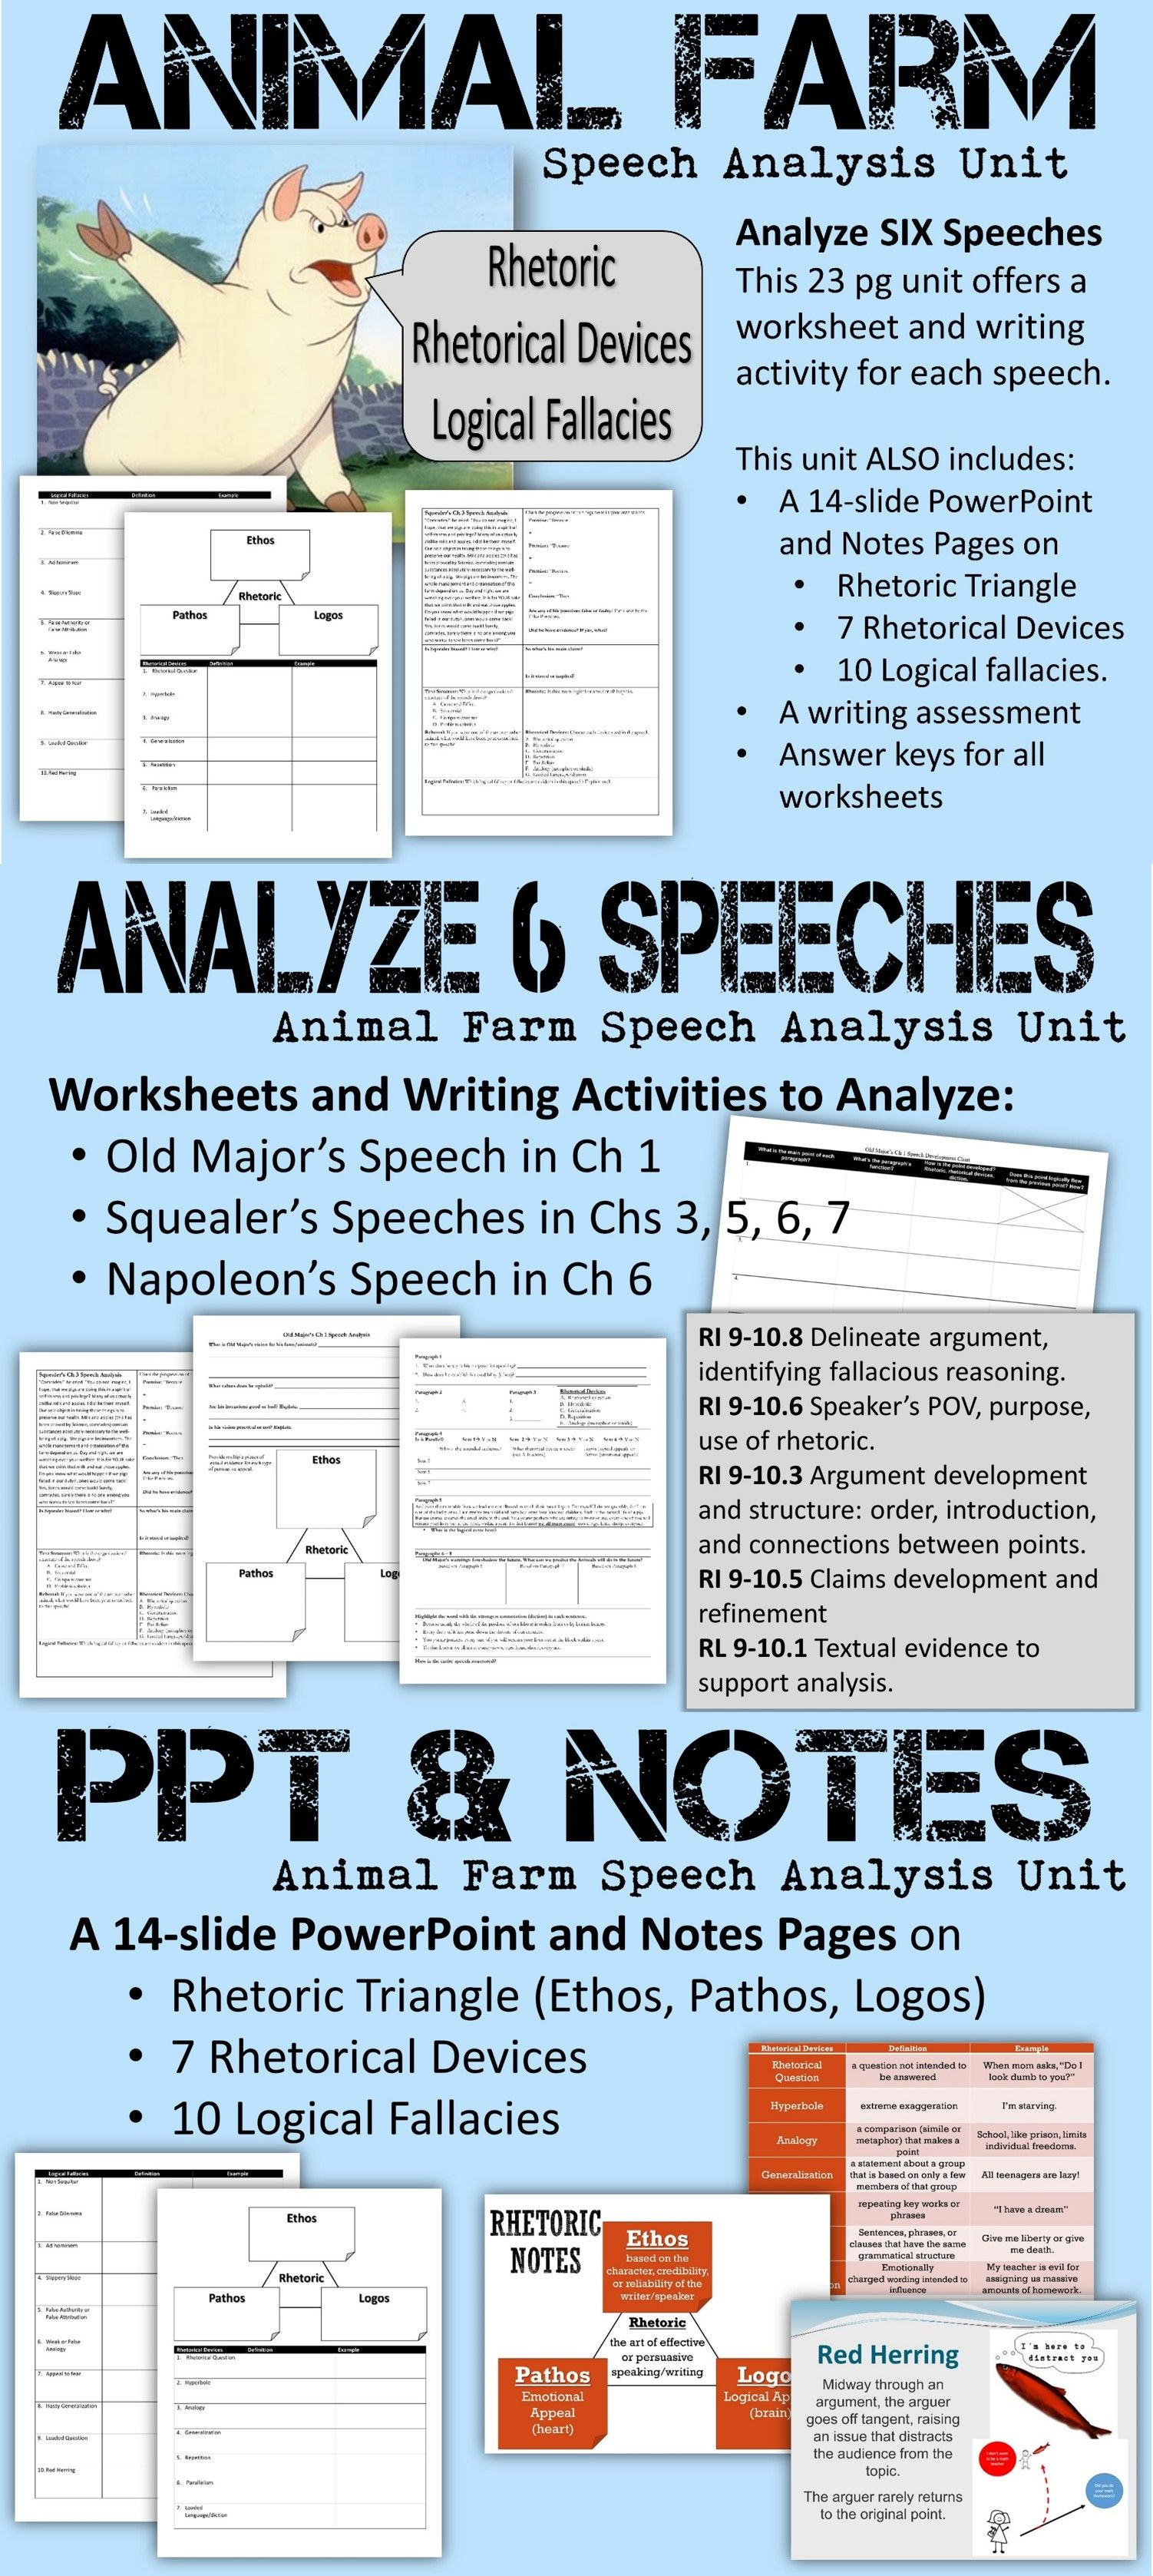 worksheet Rhetorical Devices Worksheet animal farm speech analysis unit rhetorical device worksheets and analyze 6 speeches in a worksheet writing activity for each speech